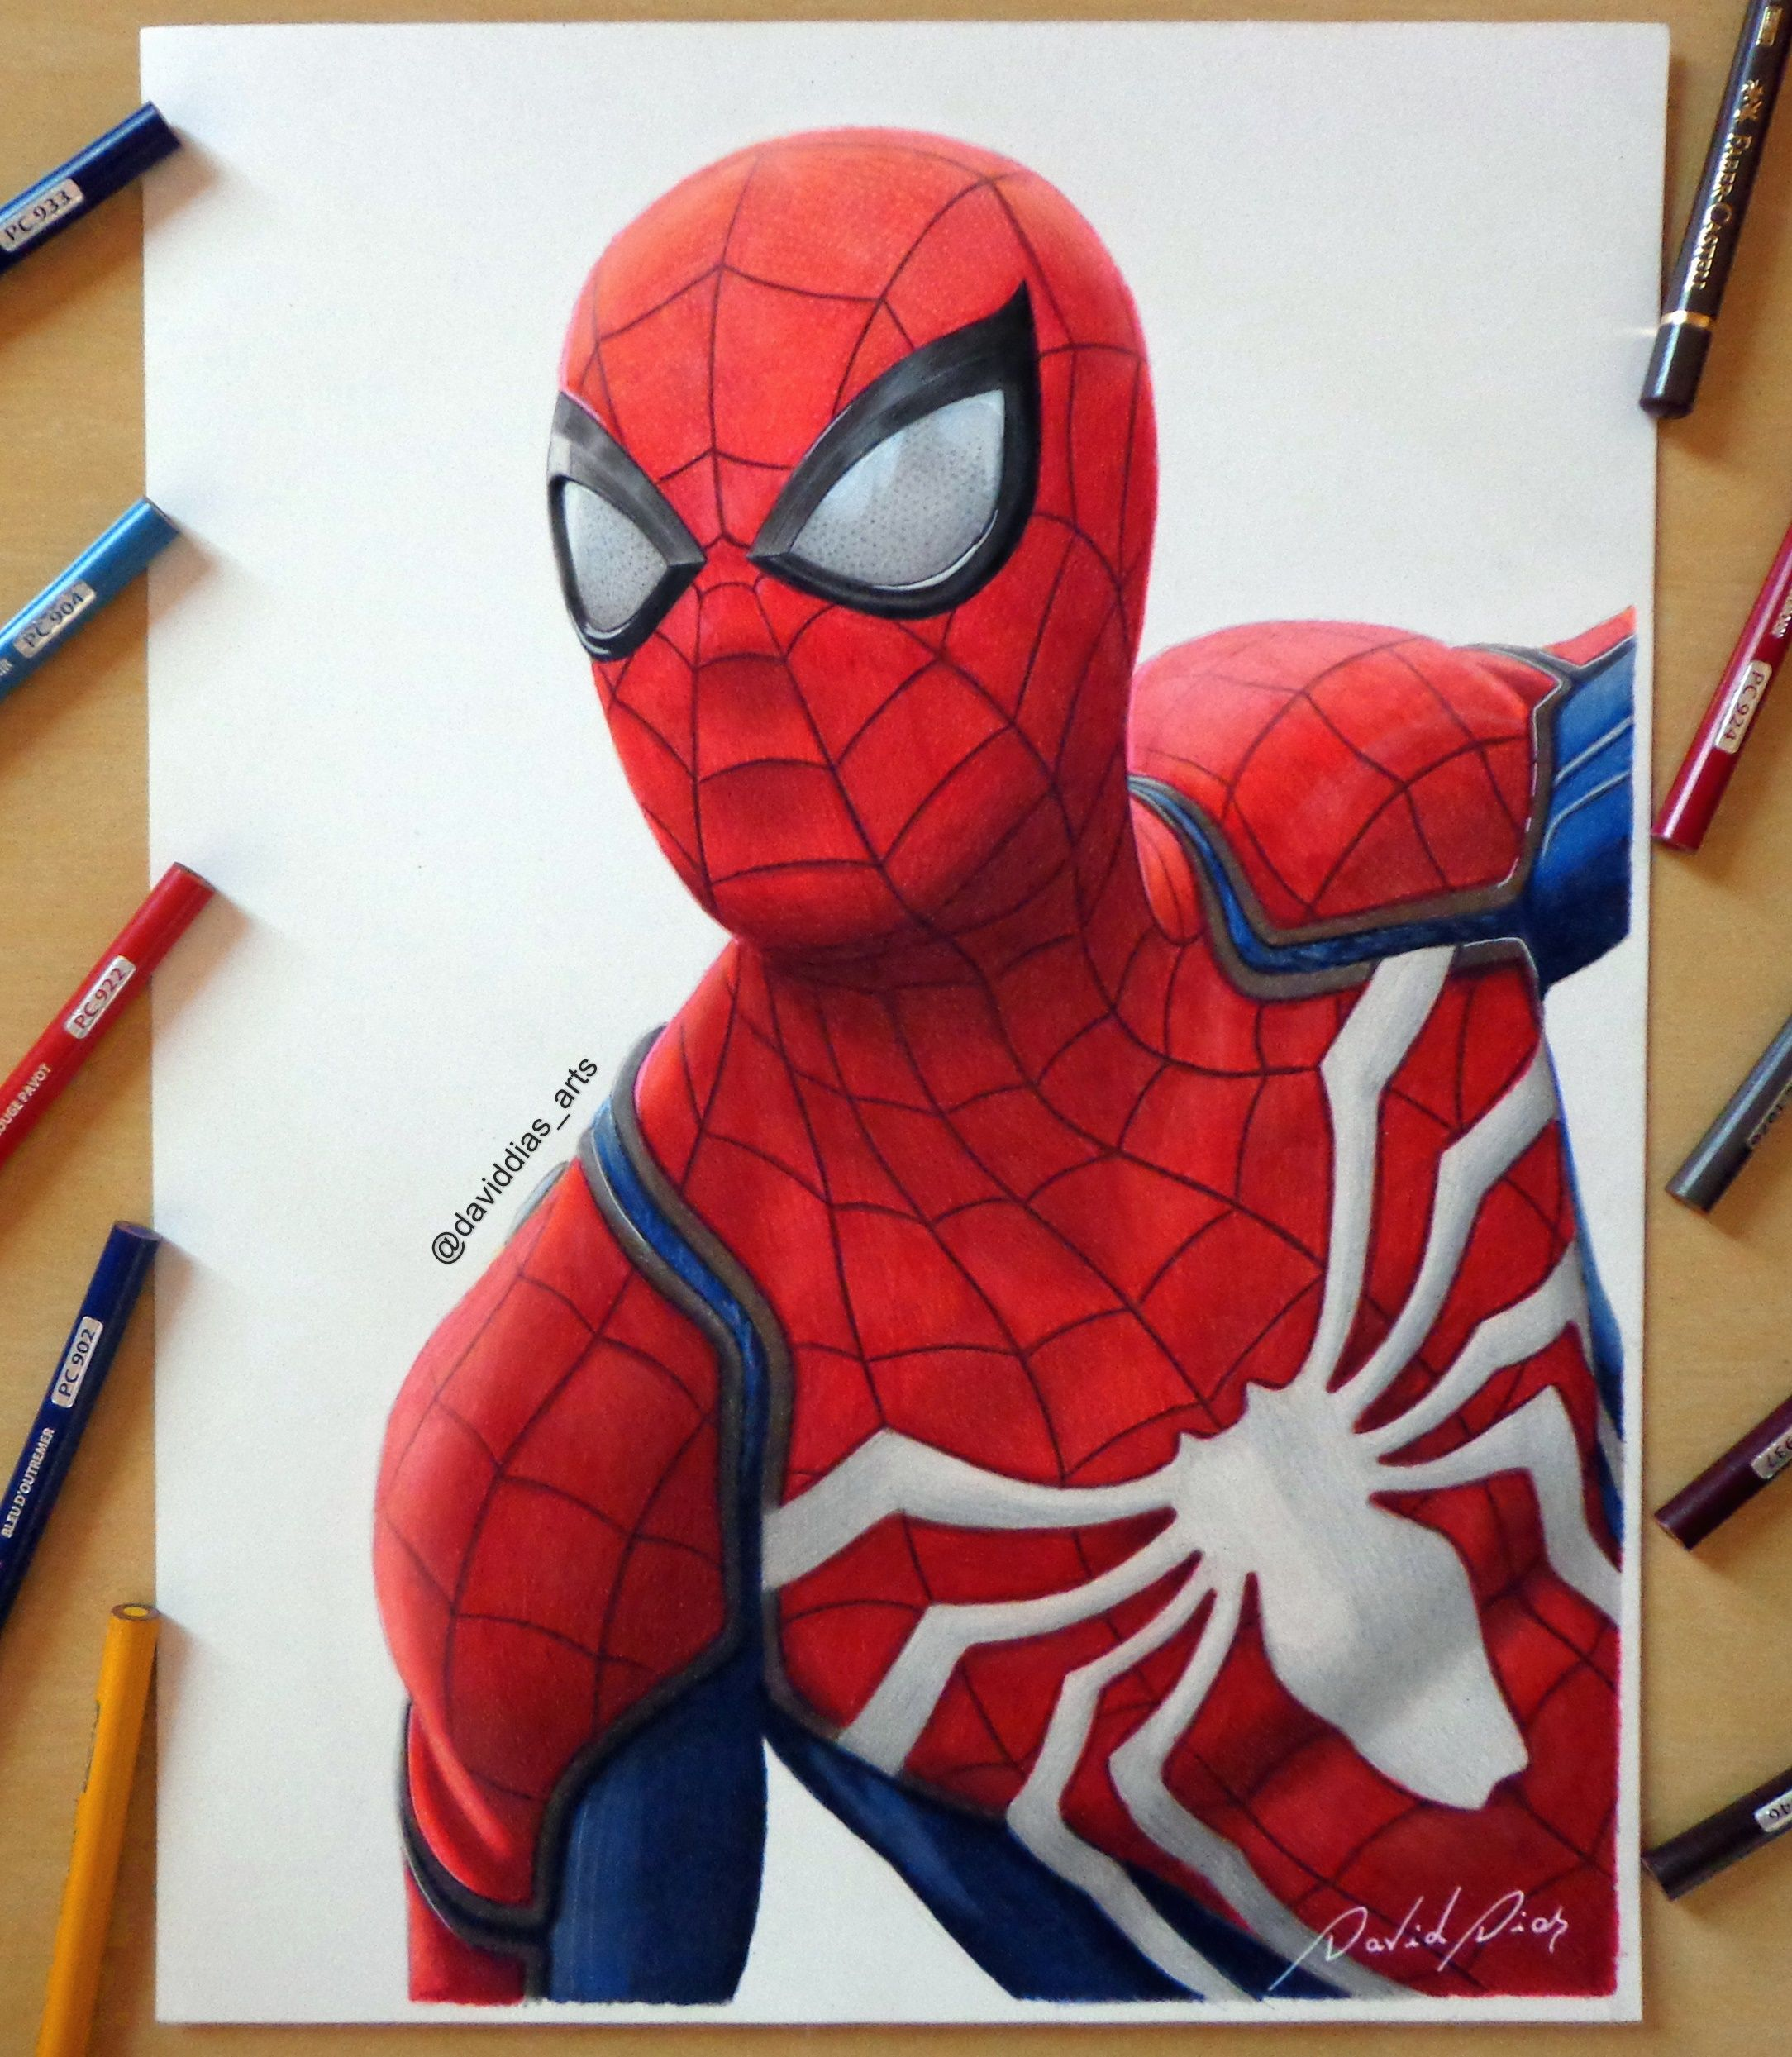 Uncategorized Drawings Of Spider Man drawing of spider man buy prints it here httpswww etsy com httpswww